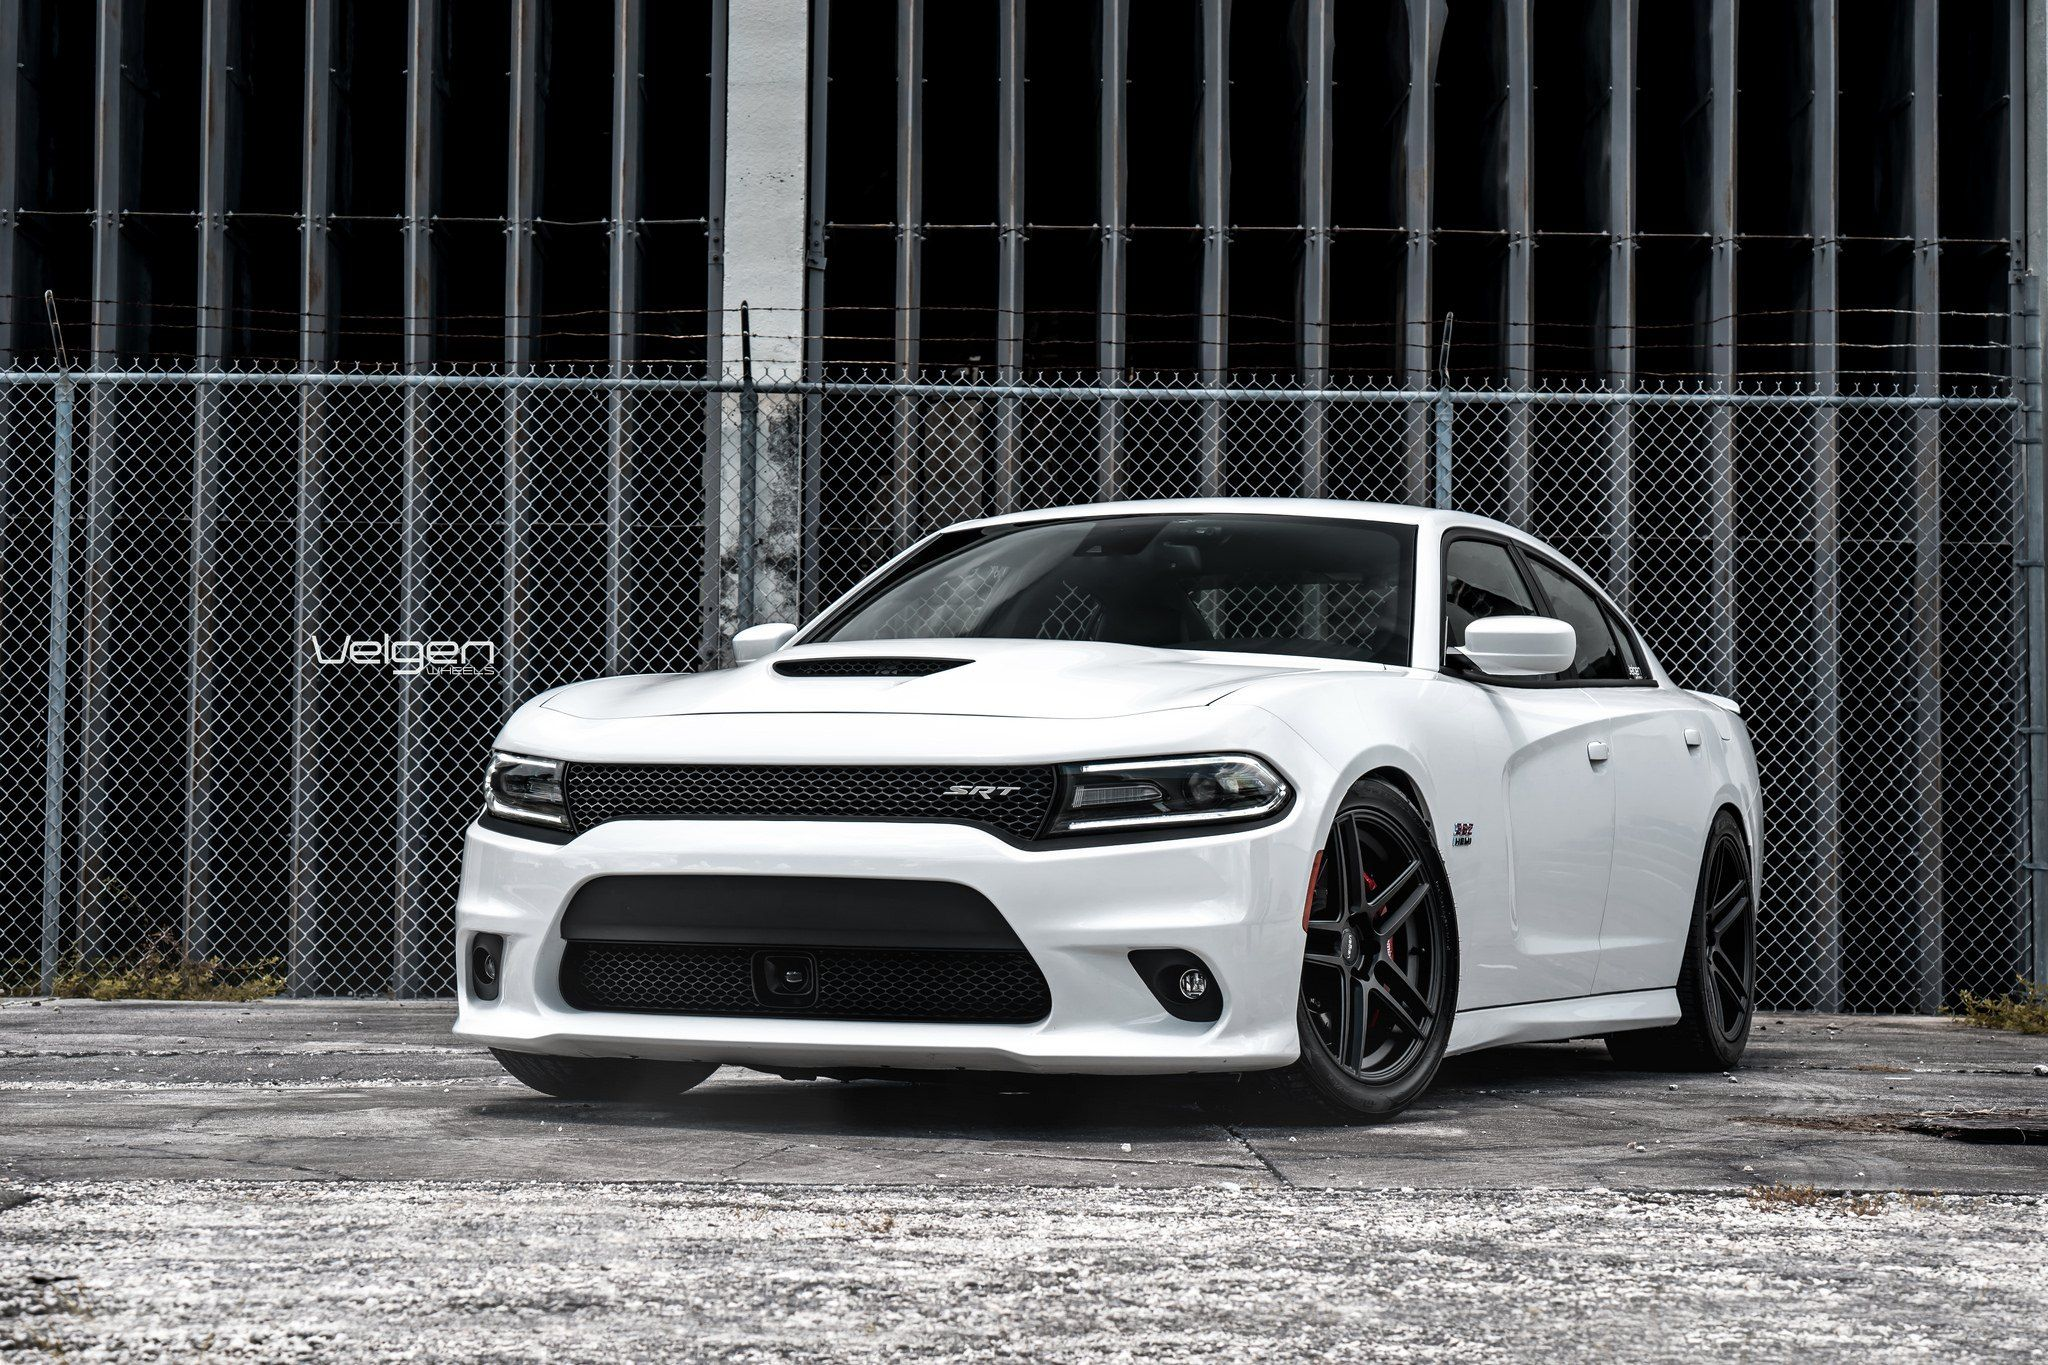 Amazing Muscle Customized White Dodge Charger Srt Dodge Charger Srt Dodge Charger Charger Srt